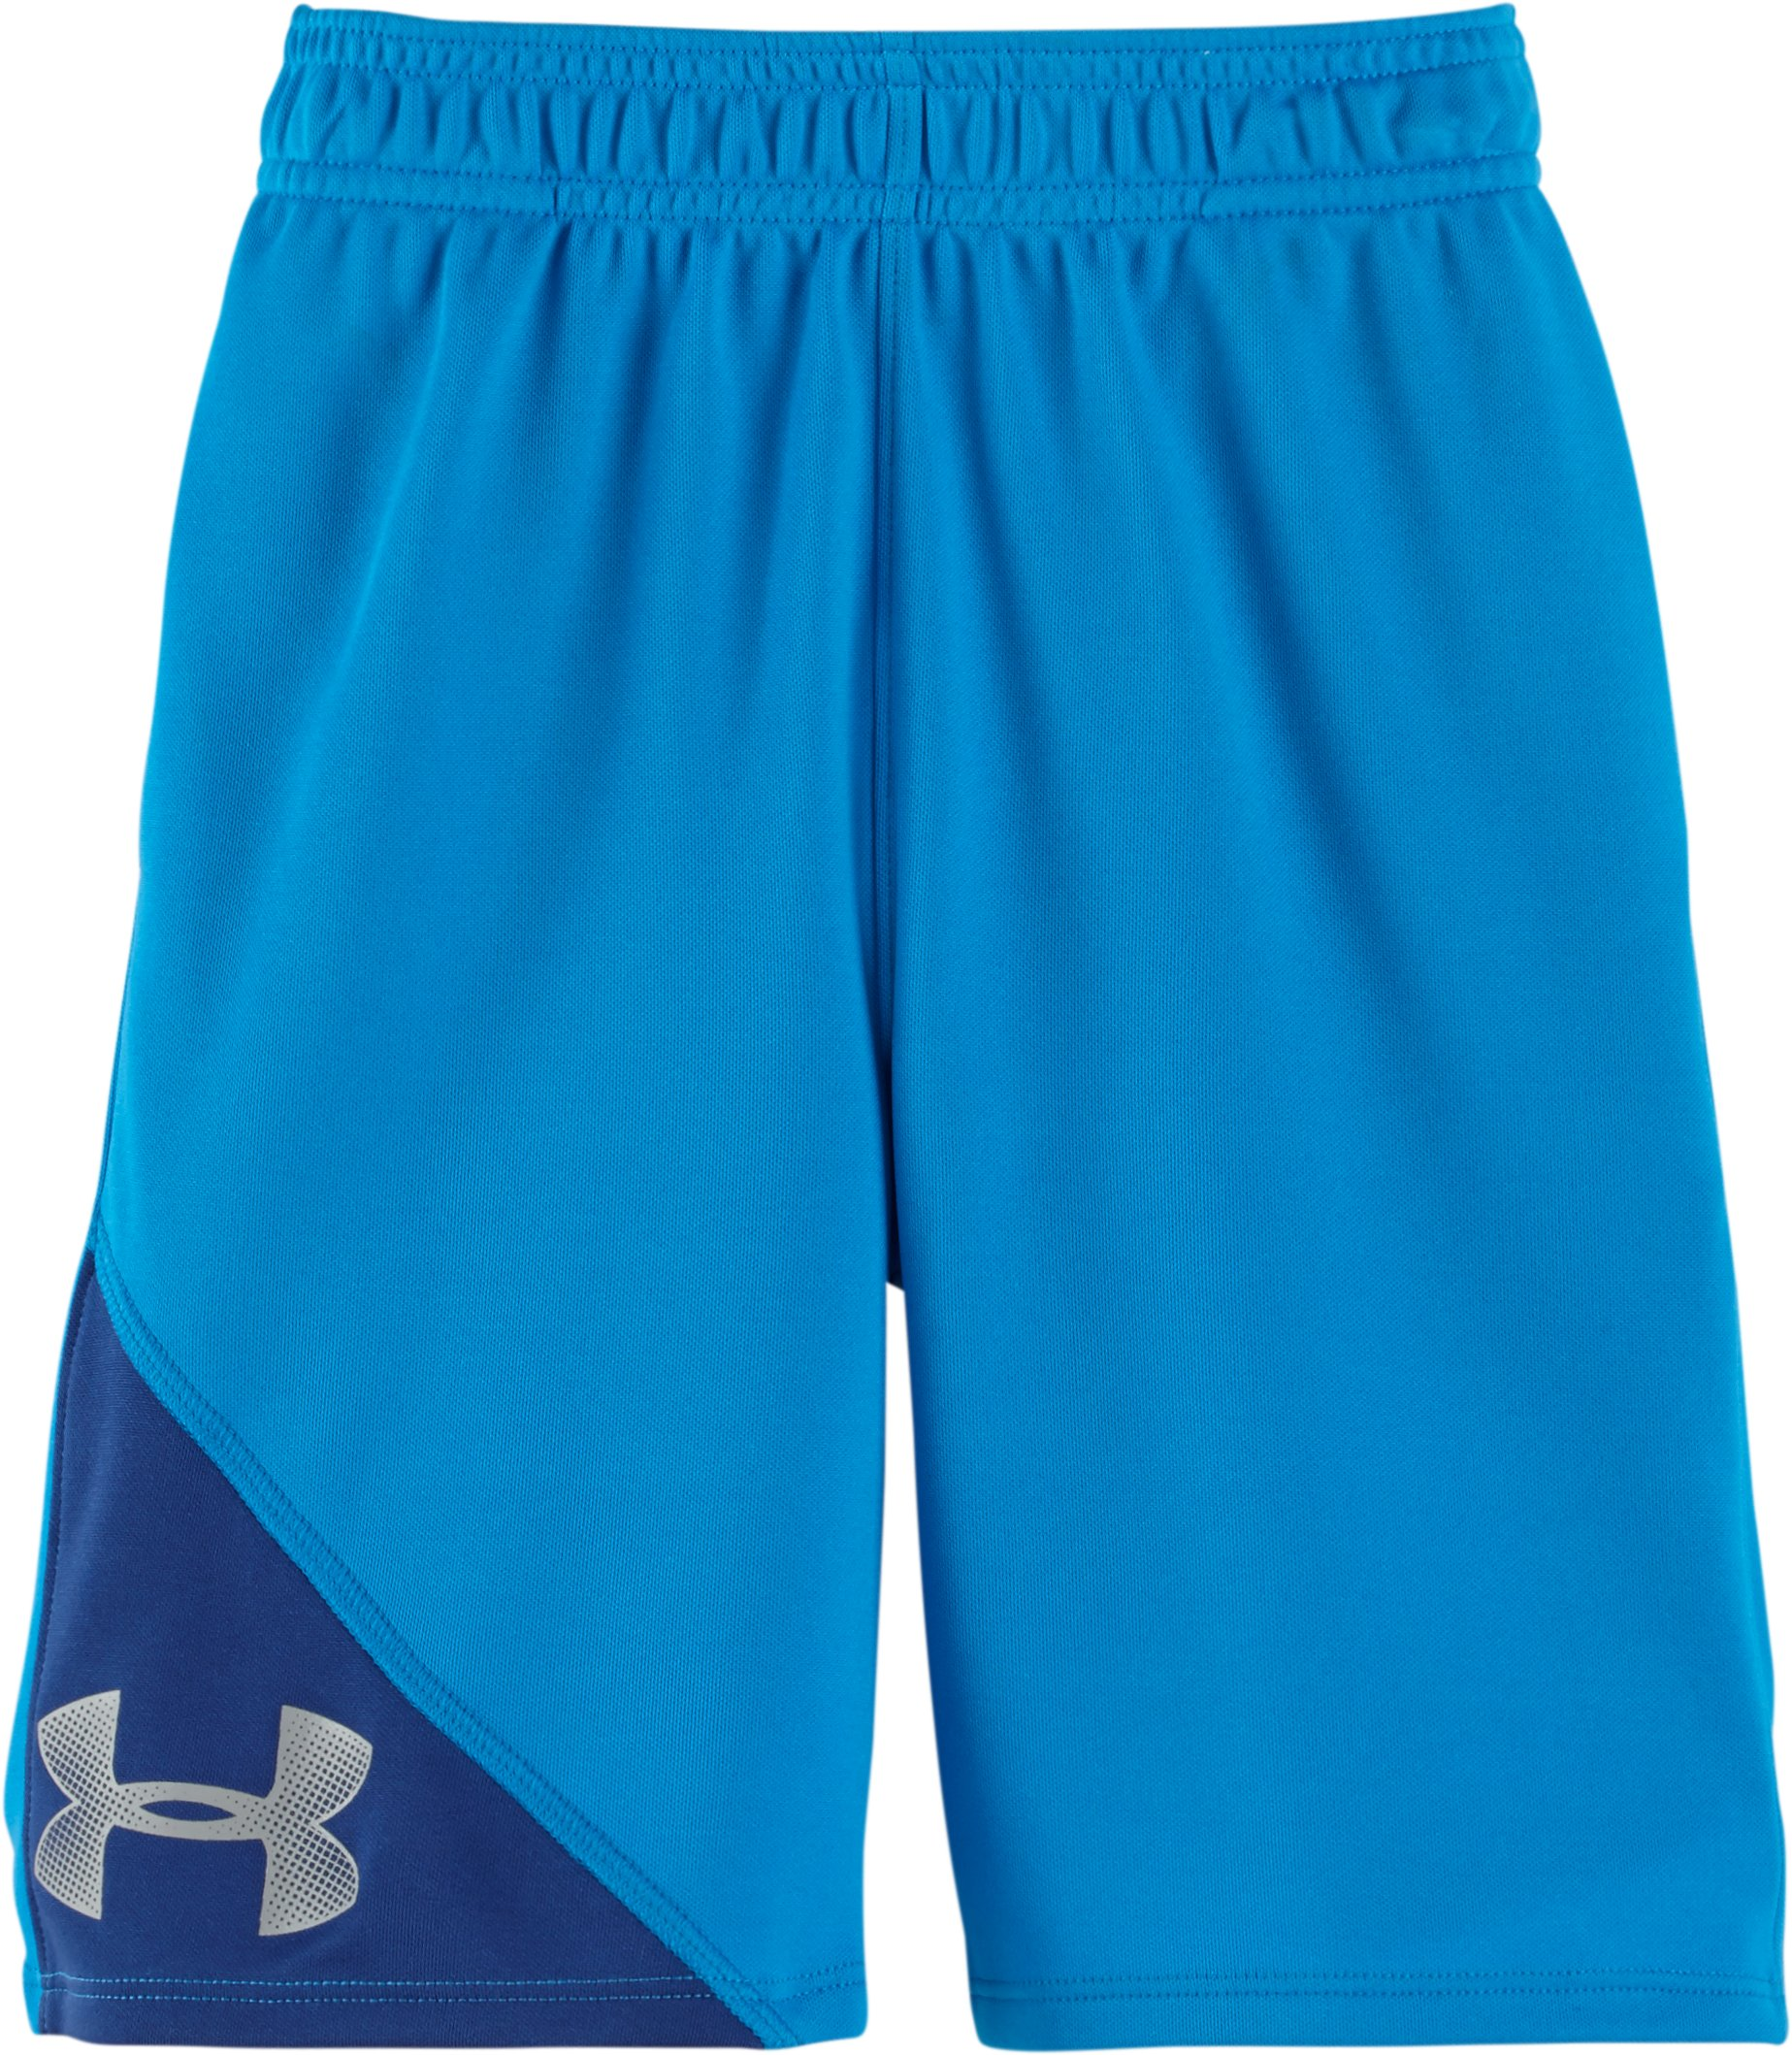 Boys' Pre-School UA Prototype Shorts, BRILLIANT BLUE